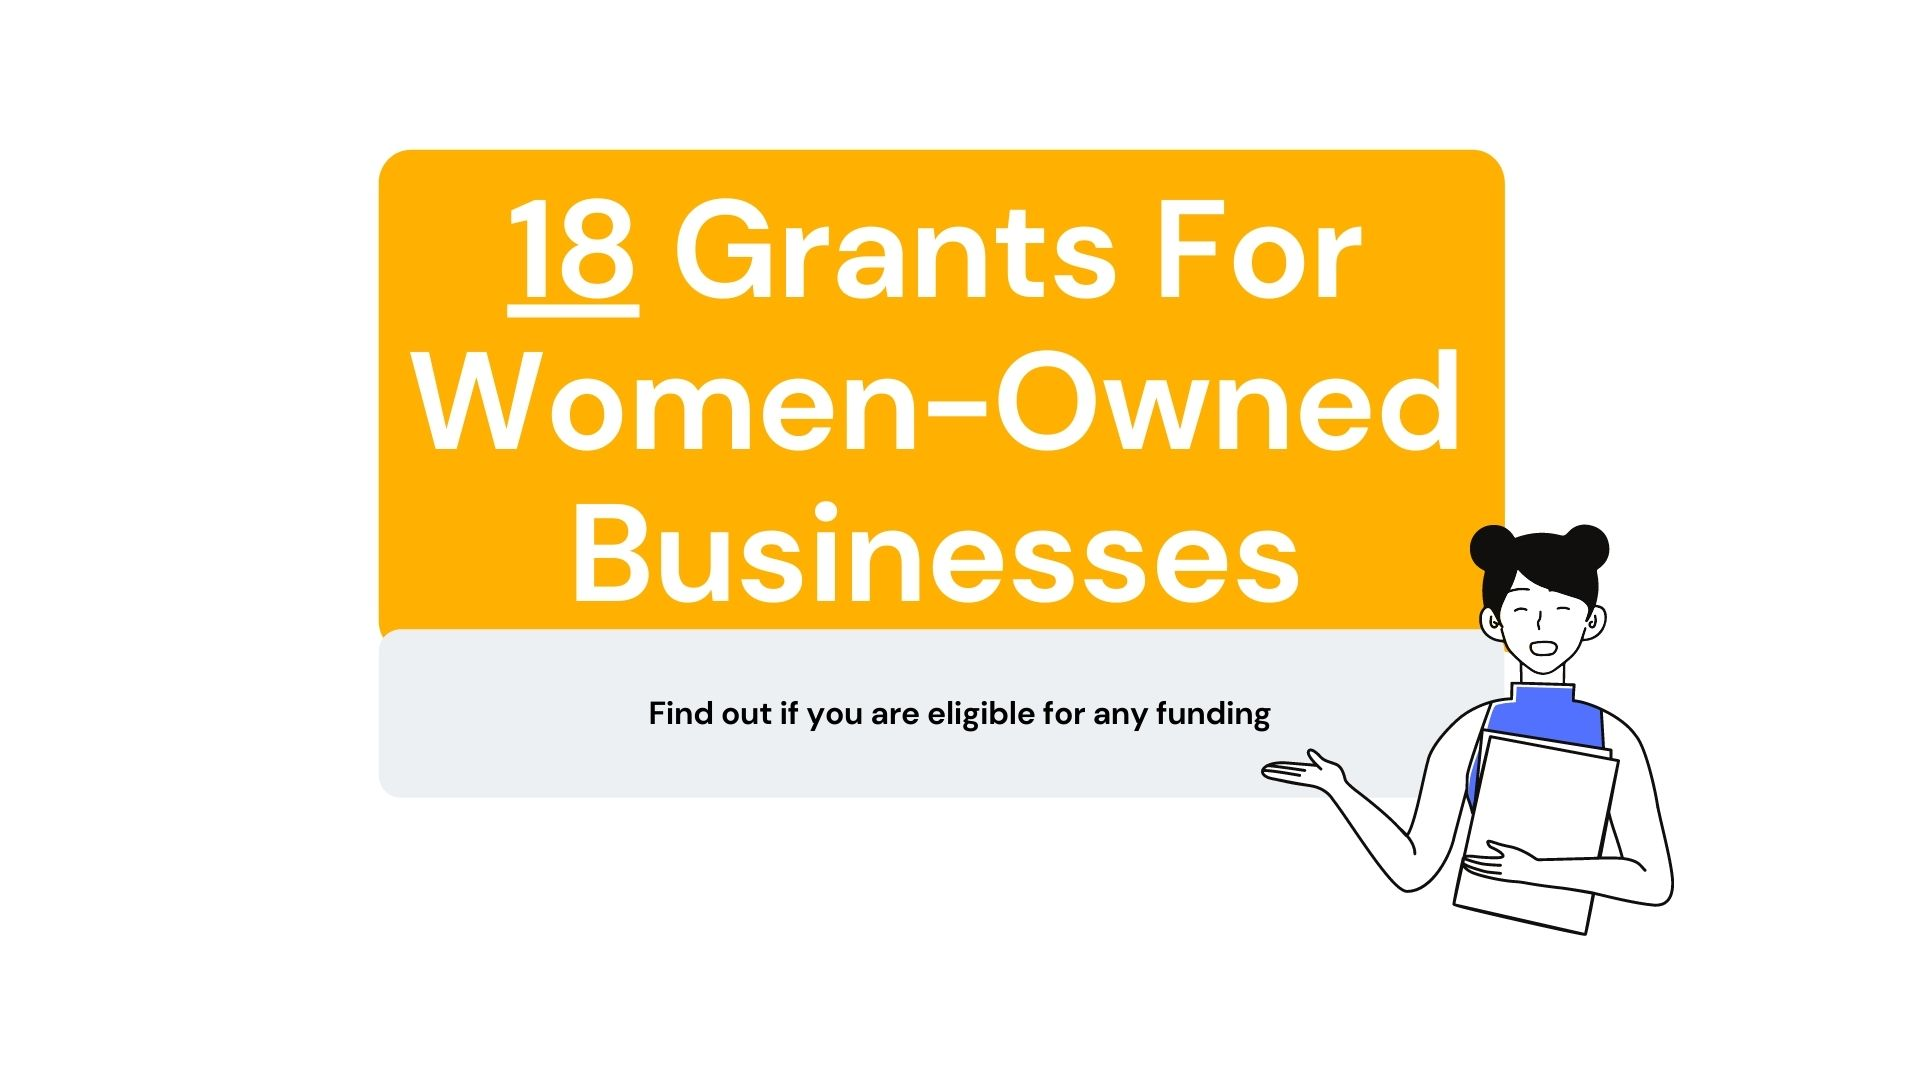 18 Grants For Women-Owned Businesses